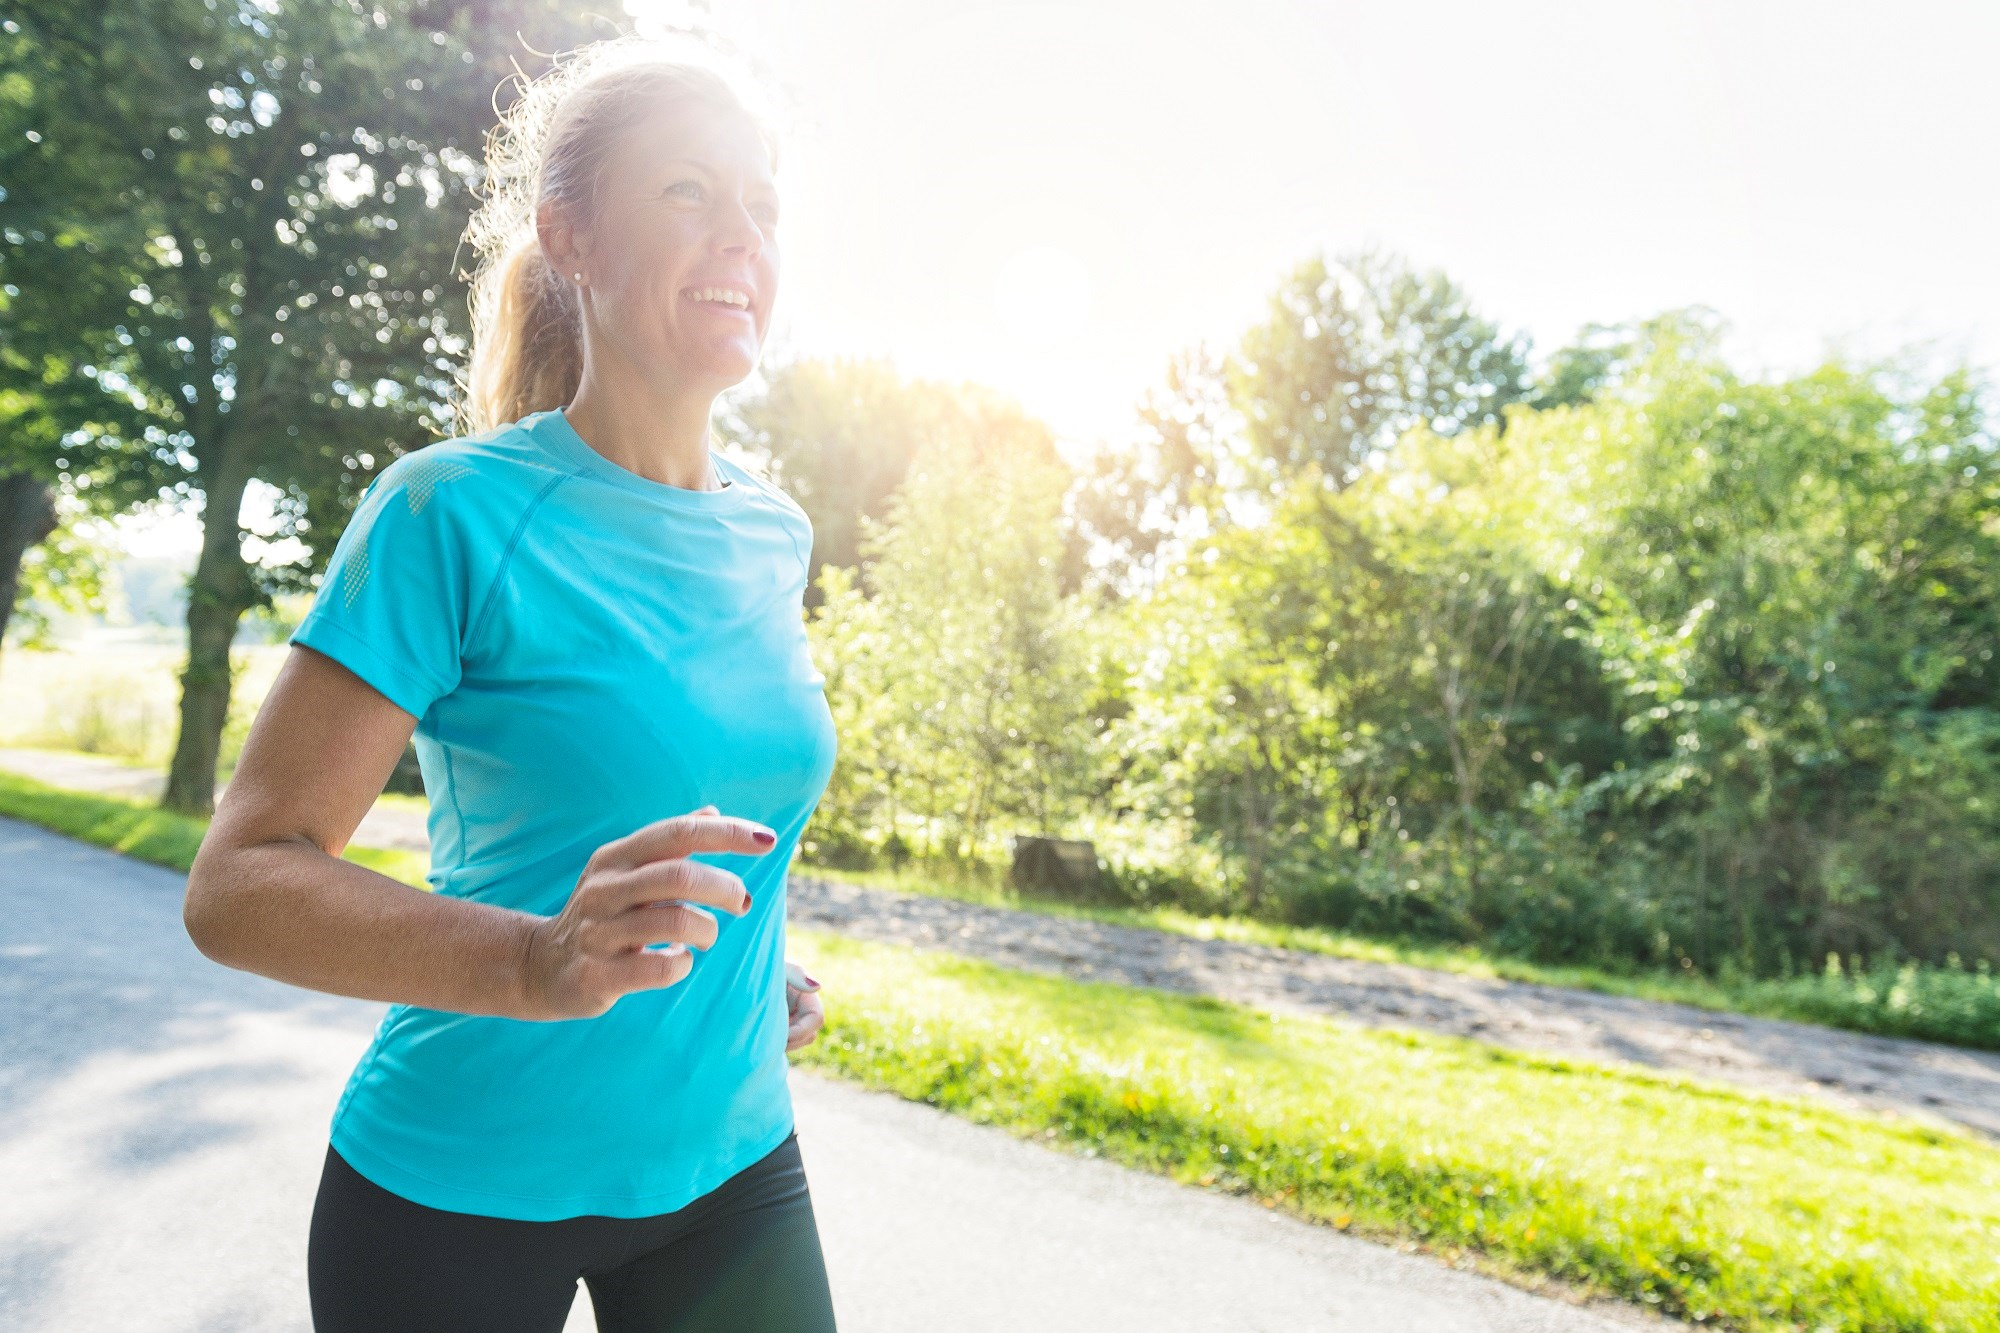 Can Weight Gain After Smoking Cessation Be Reduced By Increasing Physical Activity in Postmenopausal Women?